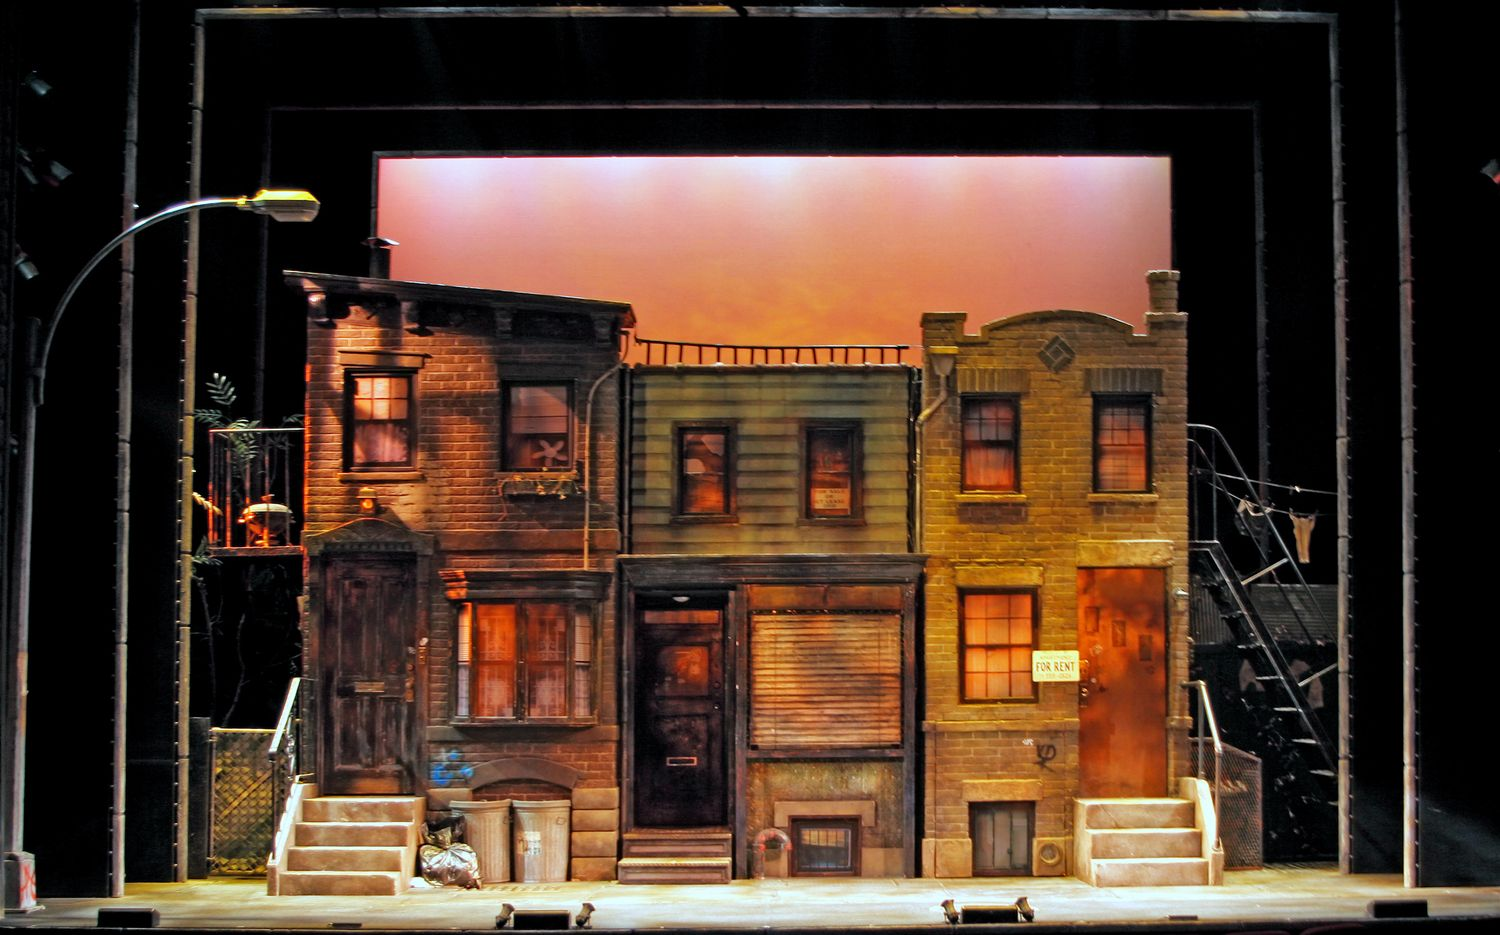 Avenue Q. John Golden Theatre. Scenic design by Anna Louizos. 2003